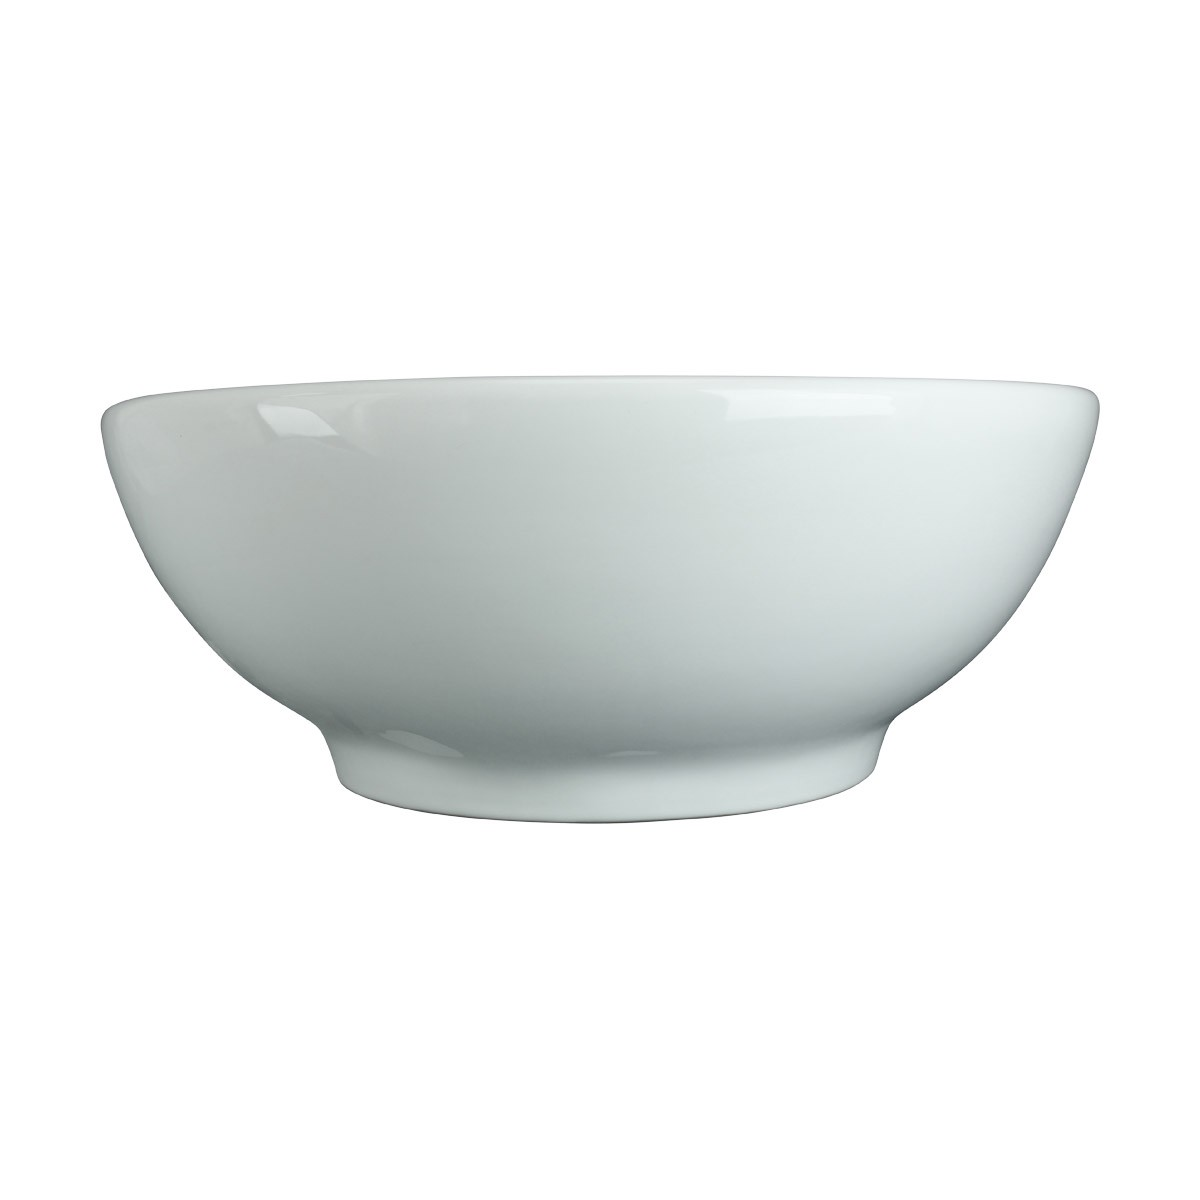 Above Counter Vessel Bathroom Sink White China Faucet Hole bathroom vessel sinks Countertop vessel sink Ceramic Bathroom Sink